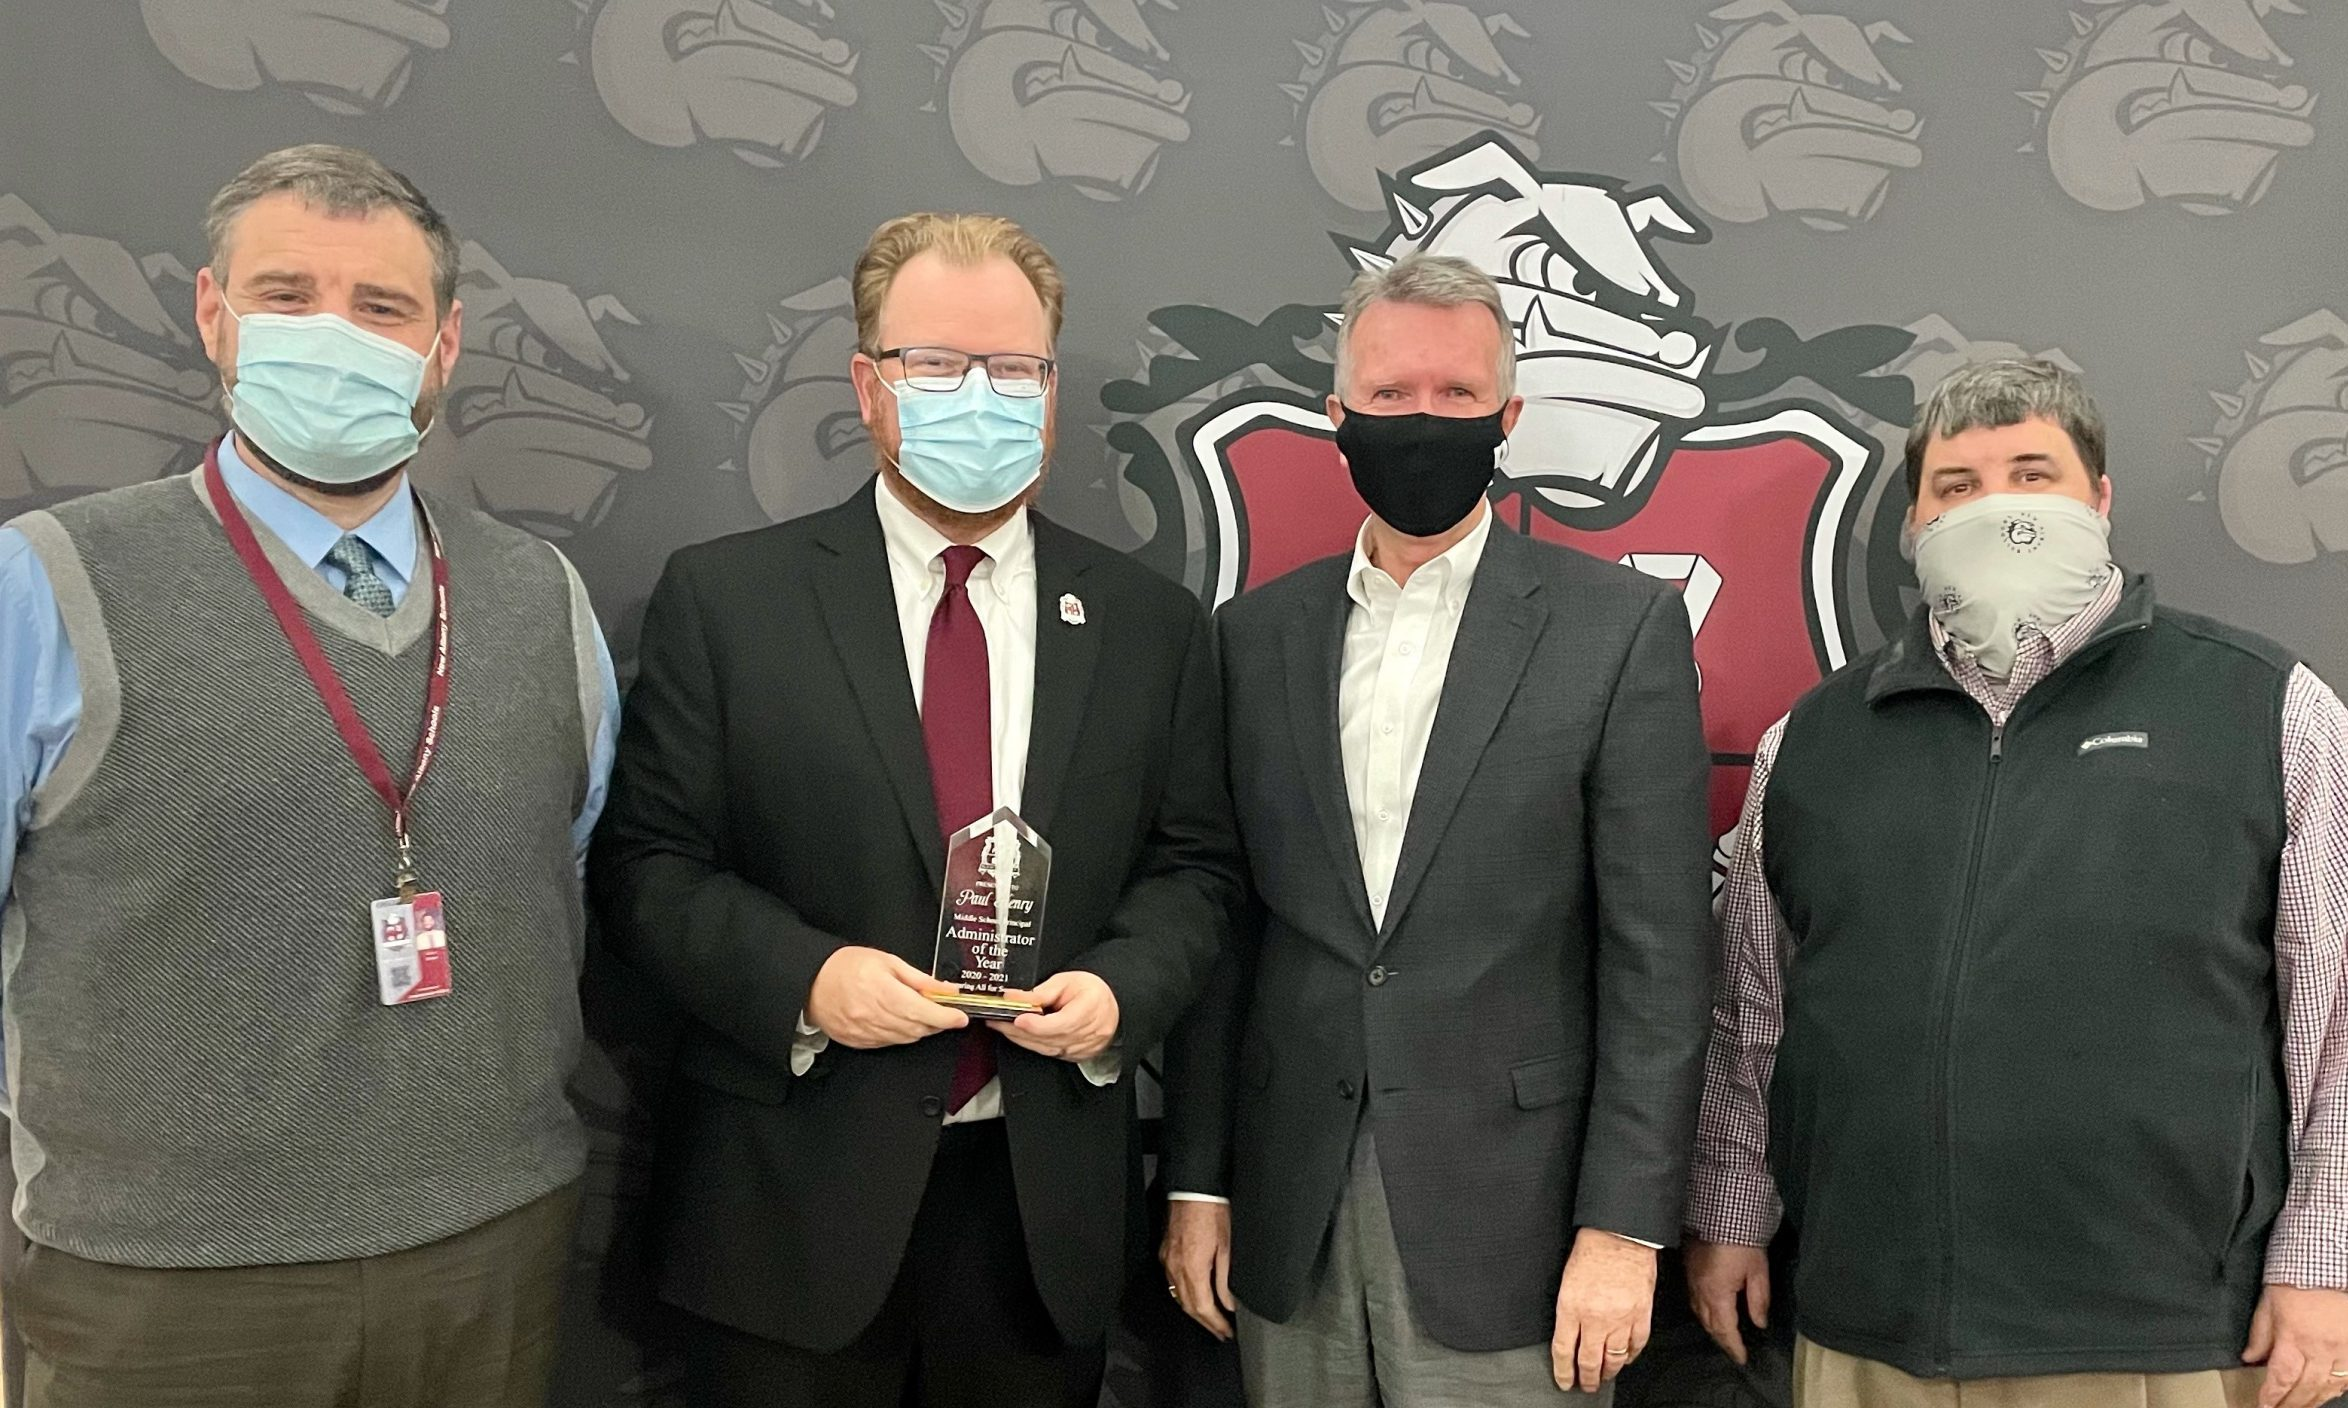 Paul Henry with Dr. Evans, Mike Staten, and Ren Nelson